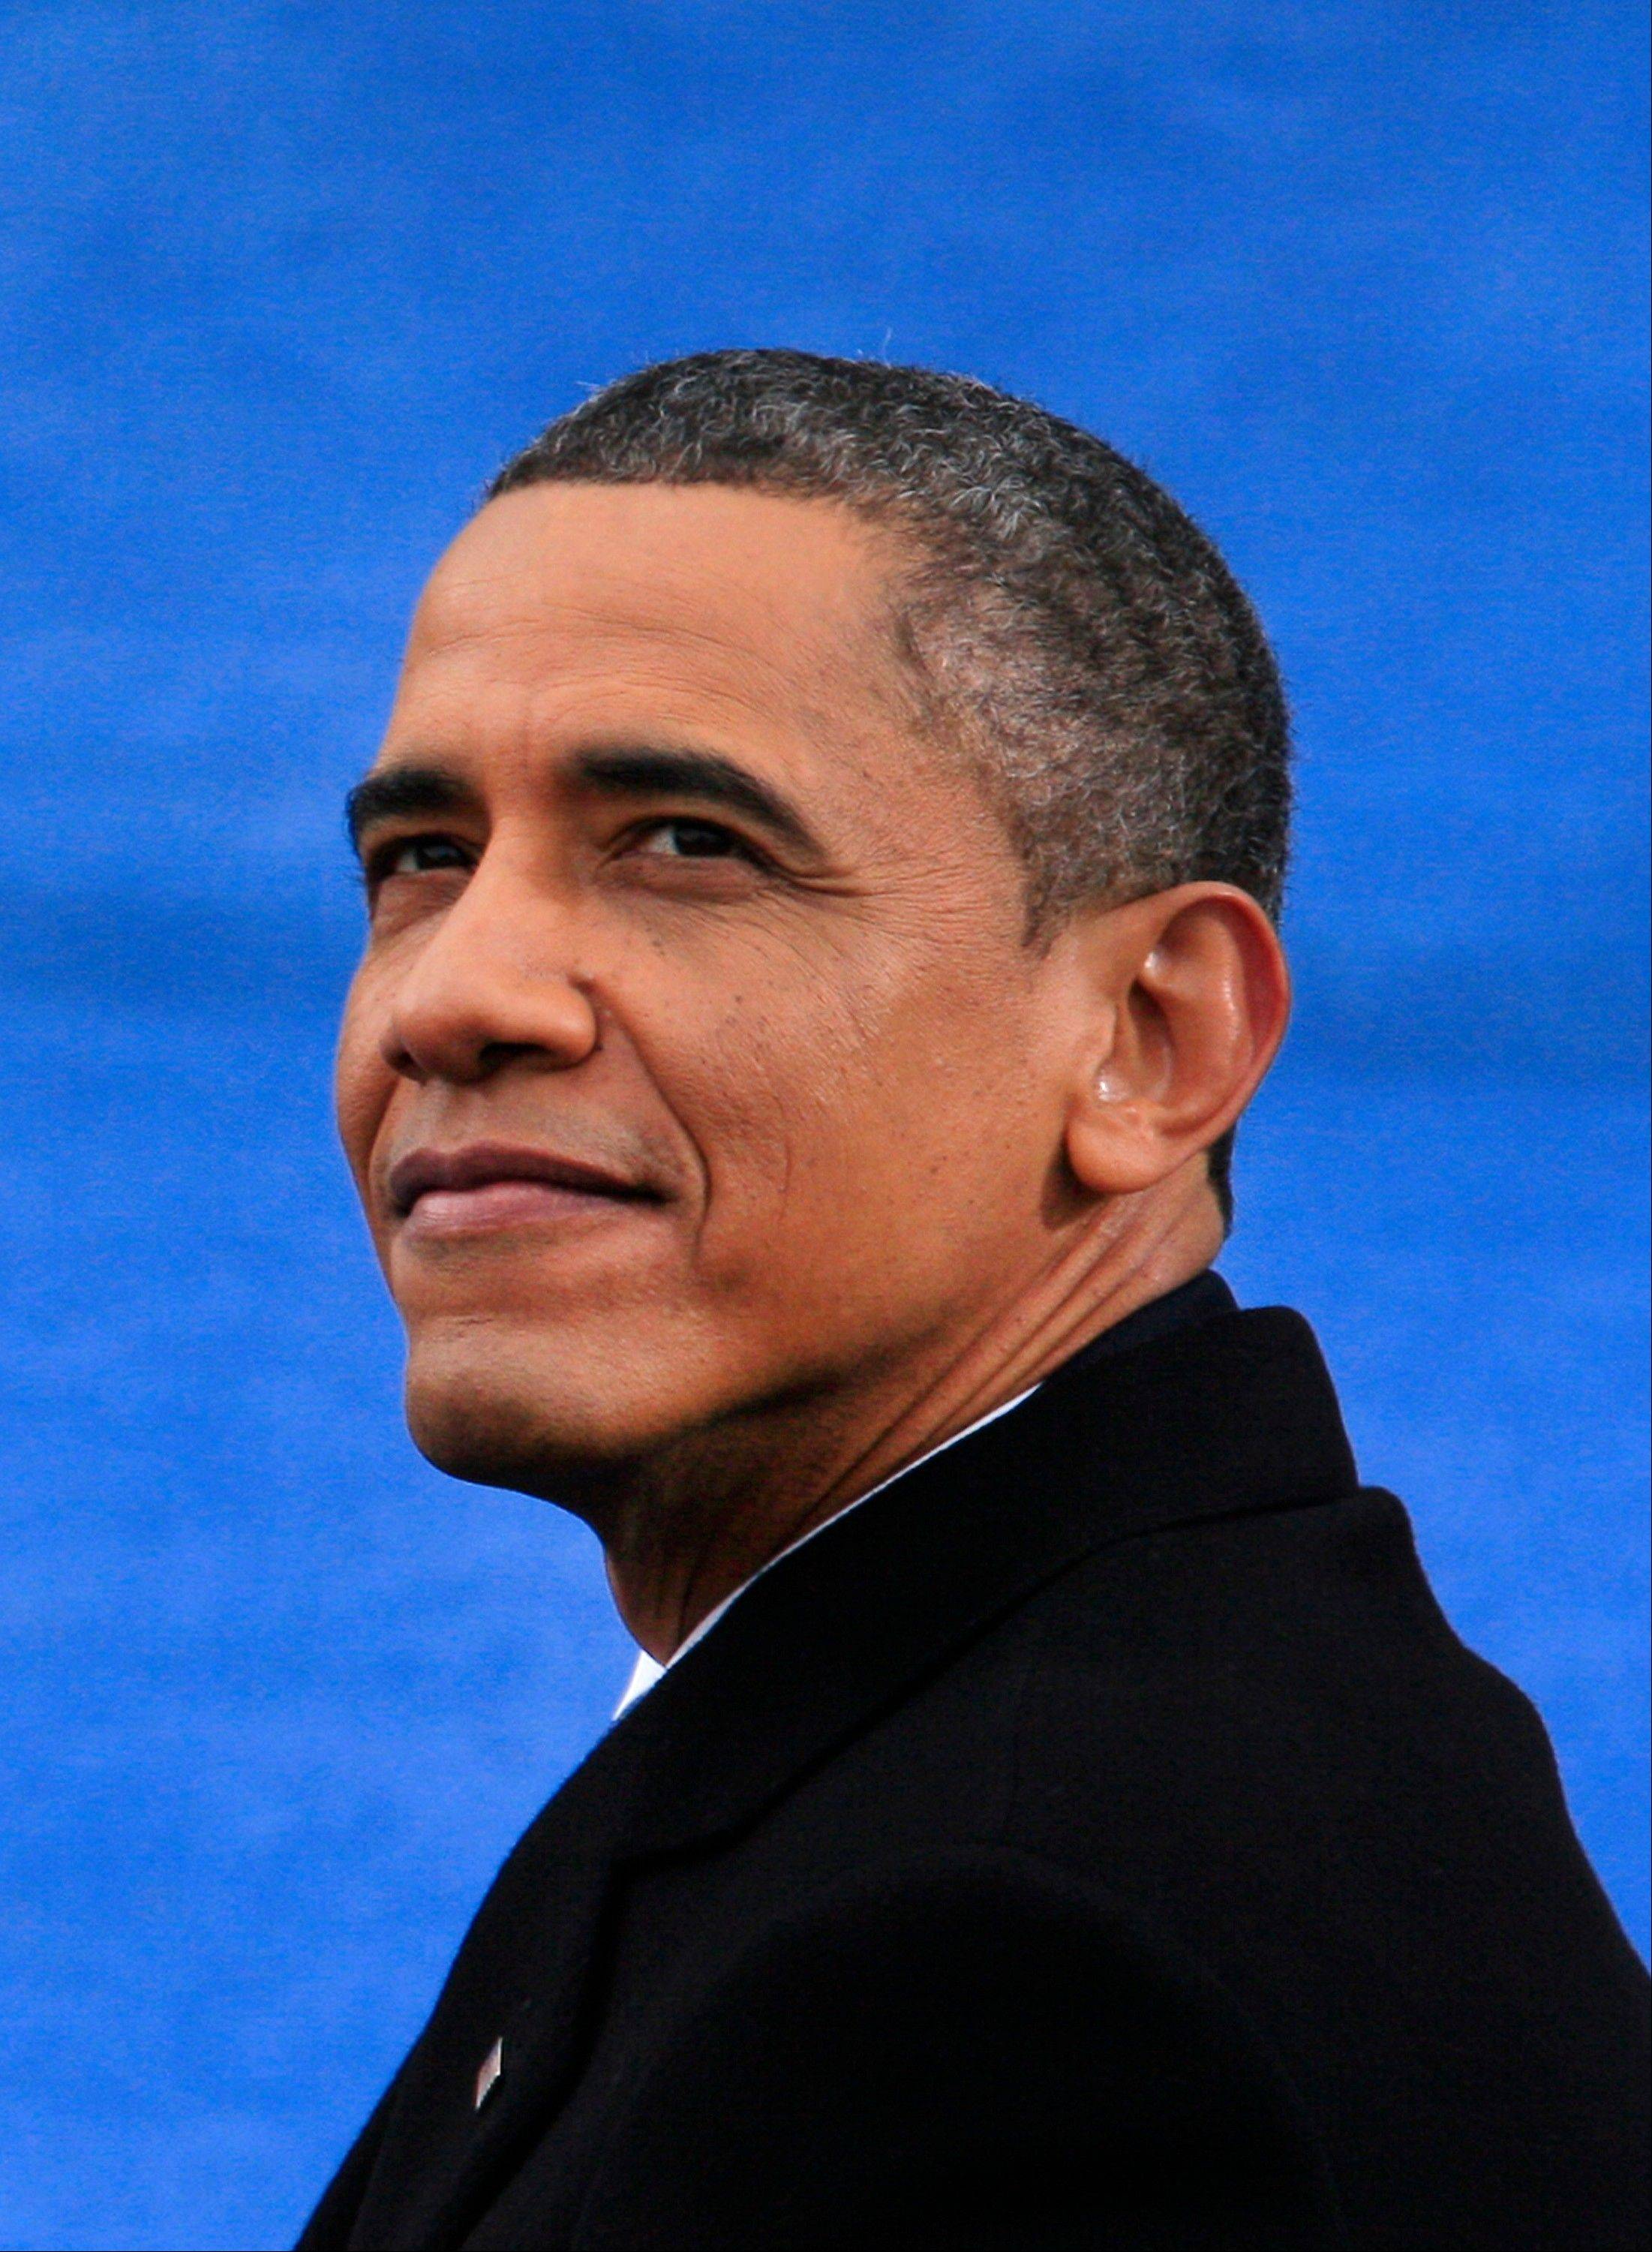 U.S. President Barack Obama looks on during the presidential inauguration in Washington, D.C., U.S., on Monday, Jan. 21, 2013. A